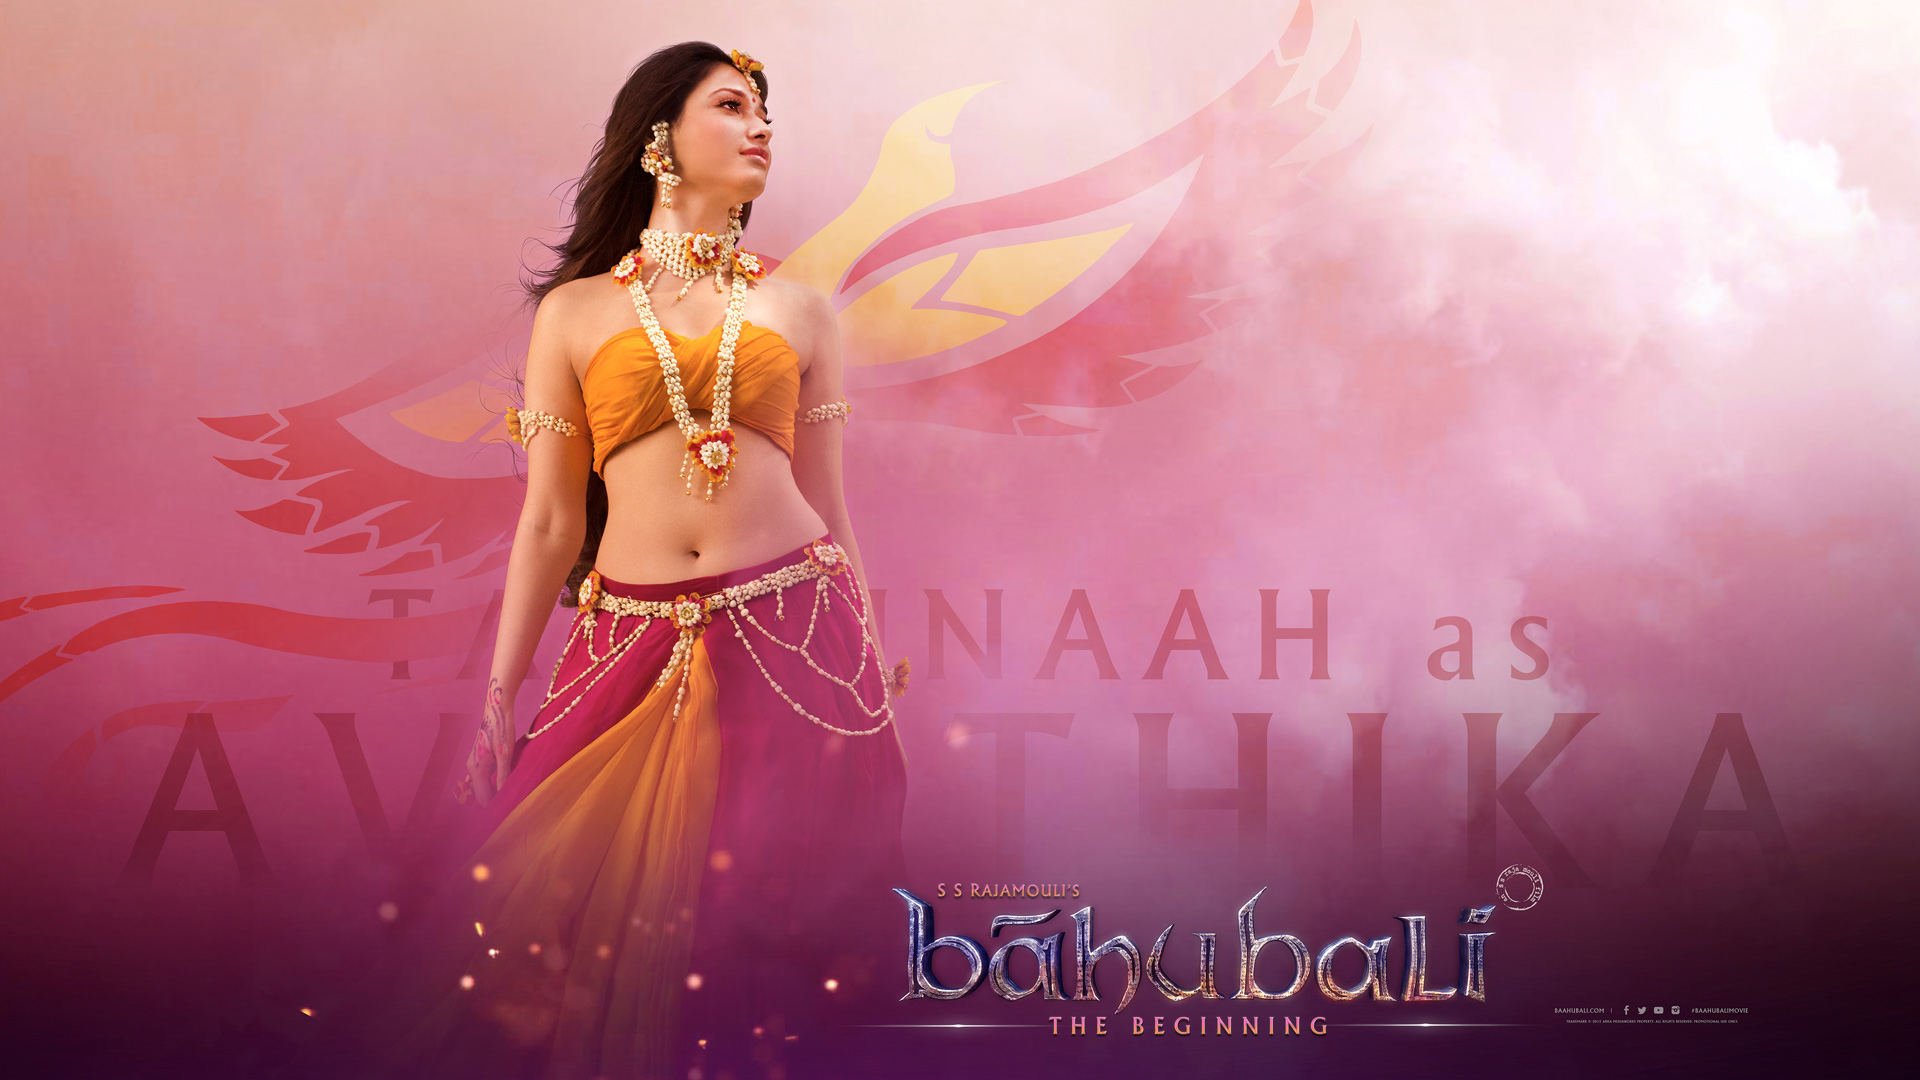 Bahubali My Best Till Date — Tamanna's Excl to Telugu360